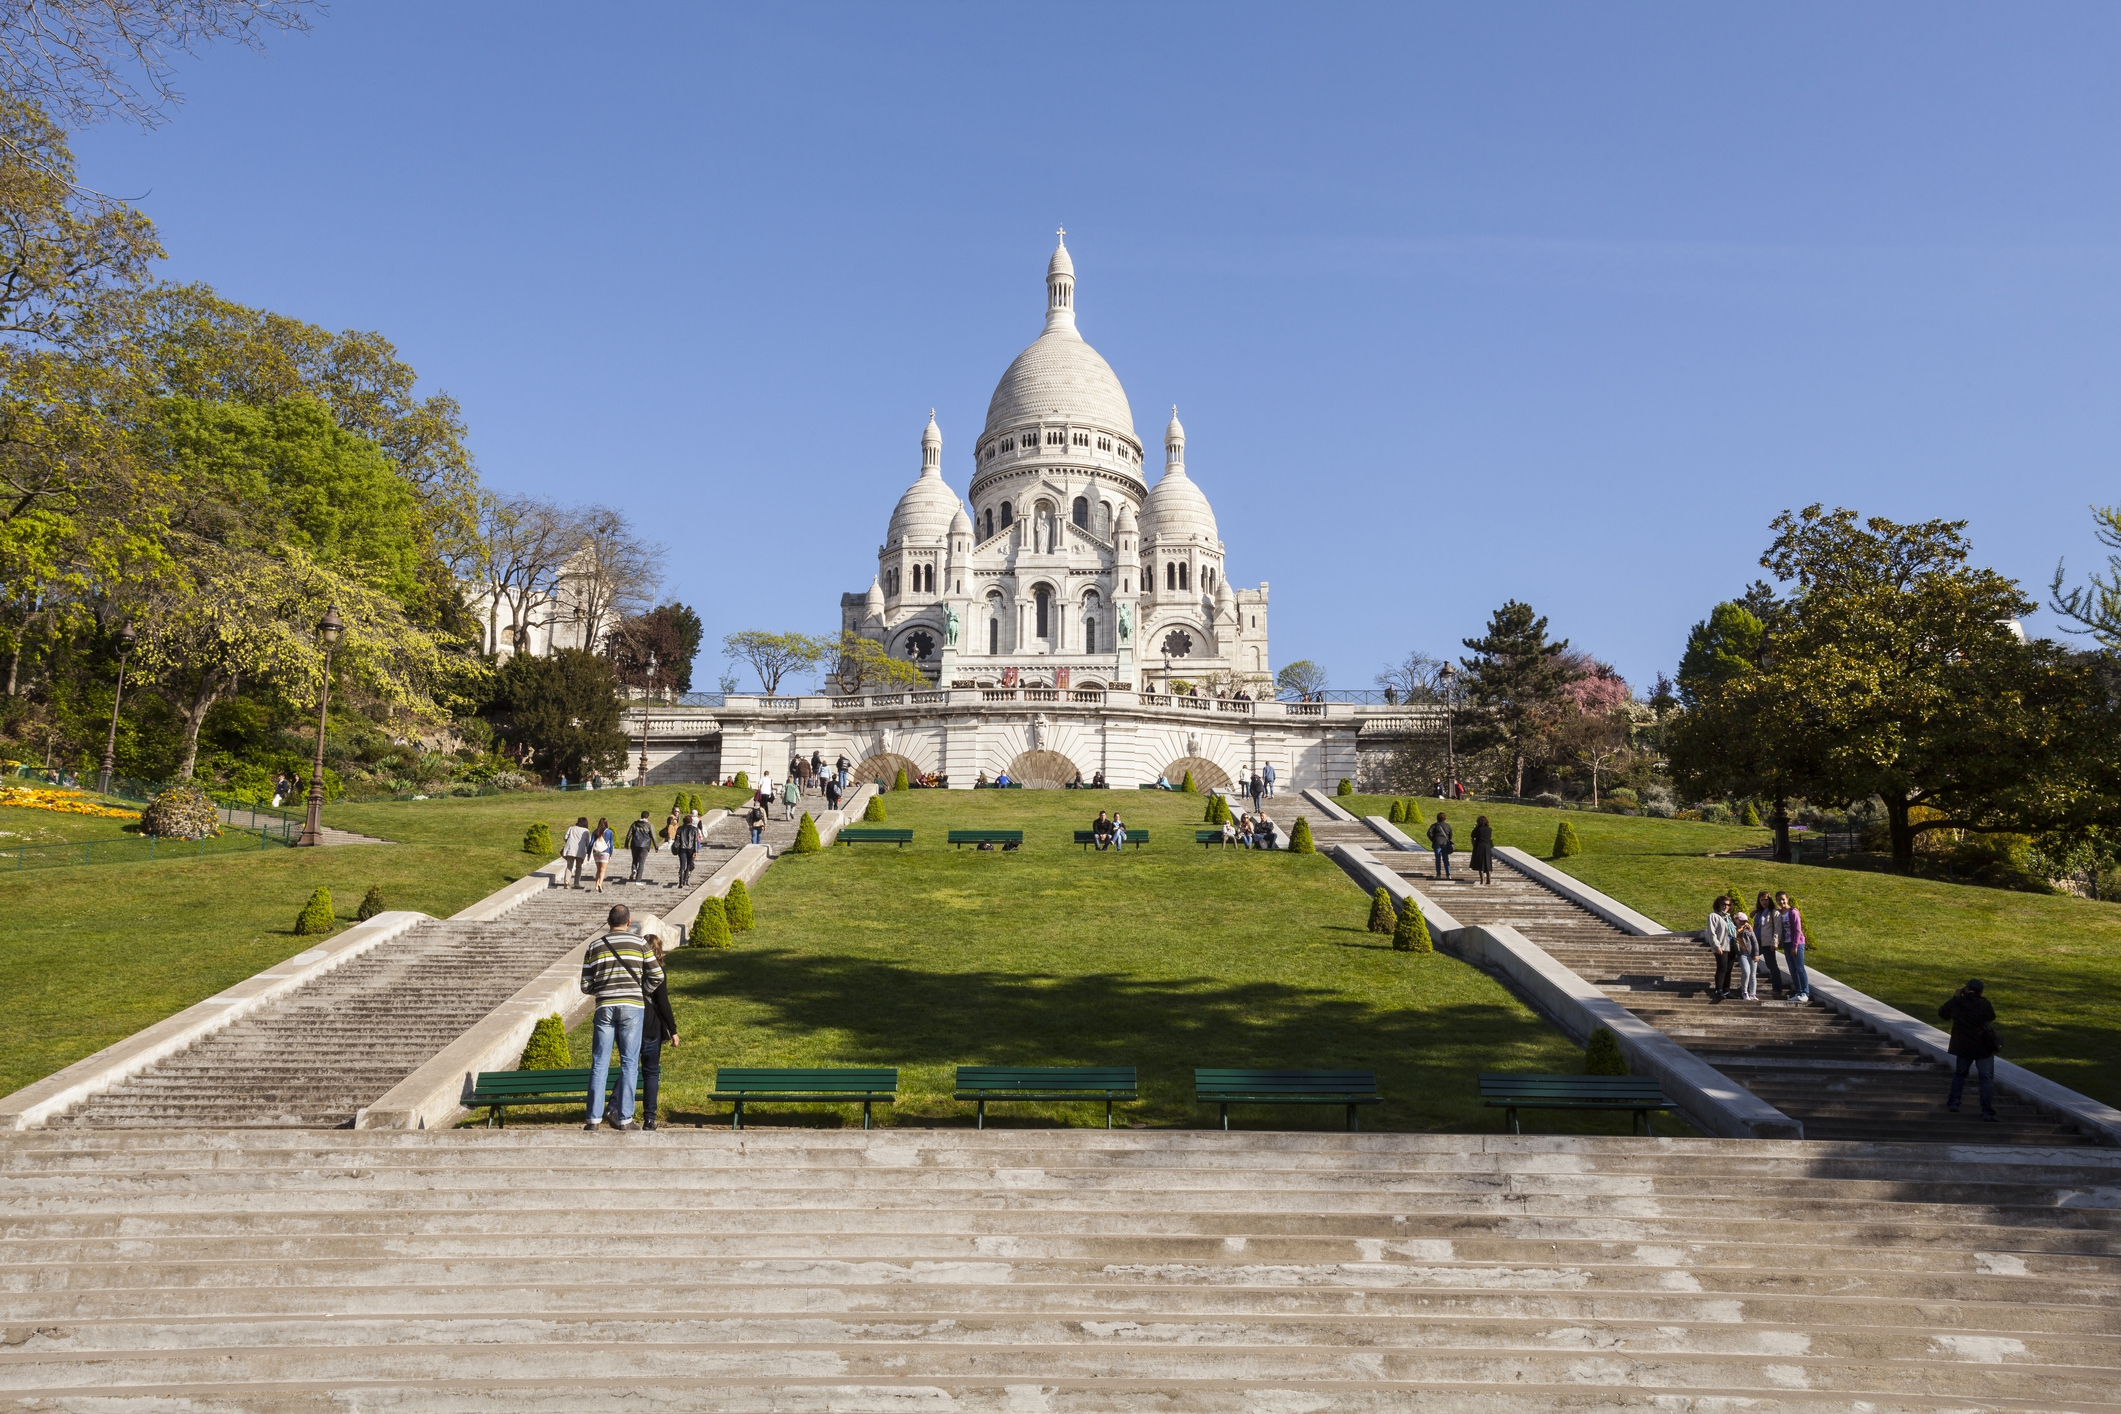 Sacre Coeur in the Montmartre area of Paris.